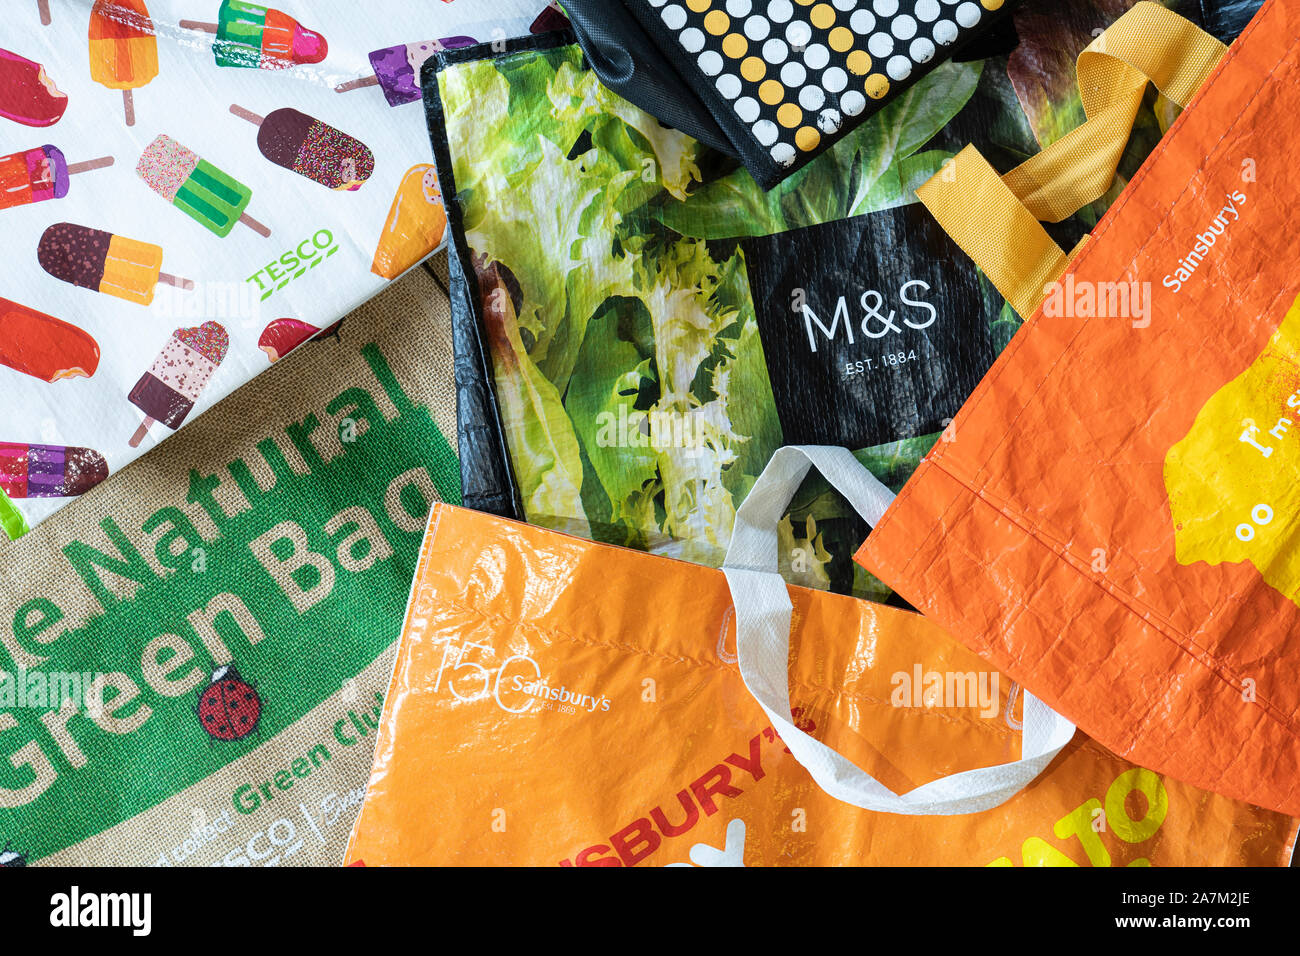 Bags for life from Tesco, Sainsbury, and Marks and Spencer. Concept - intention to reduce the use of single use plastic bags Stock Photo